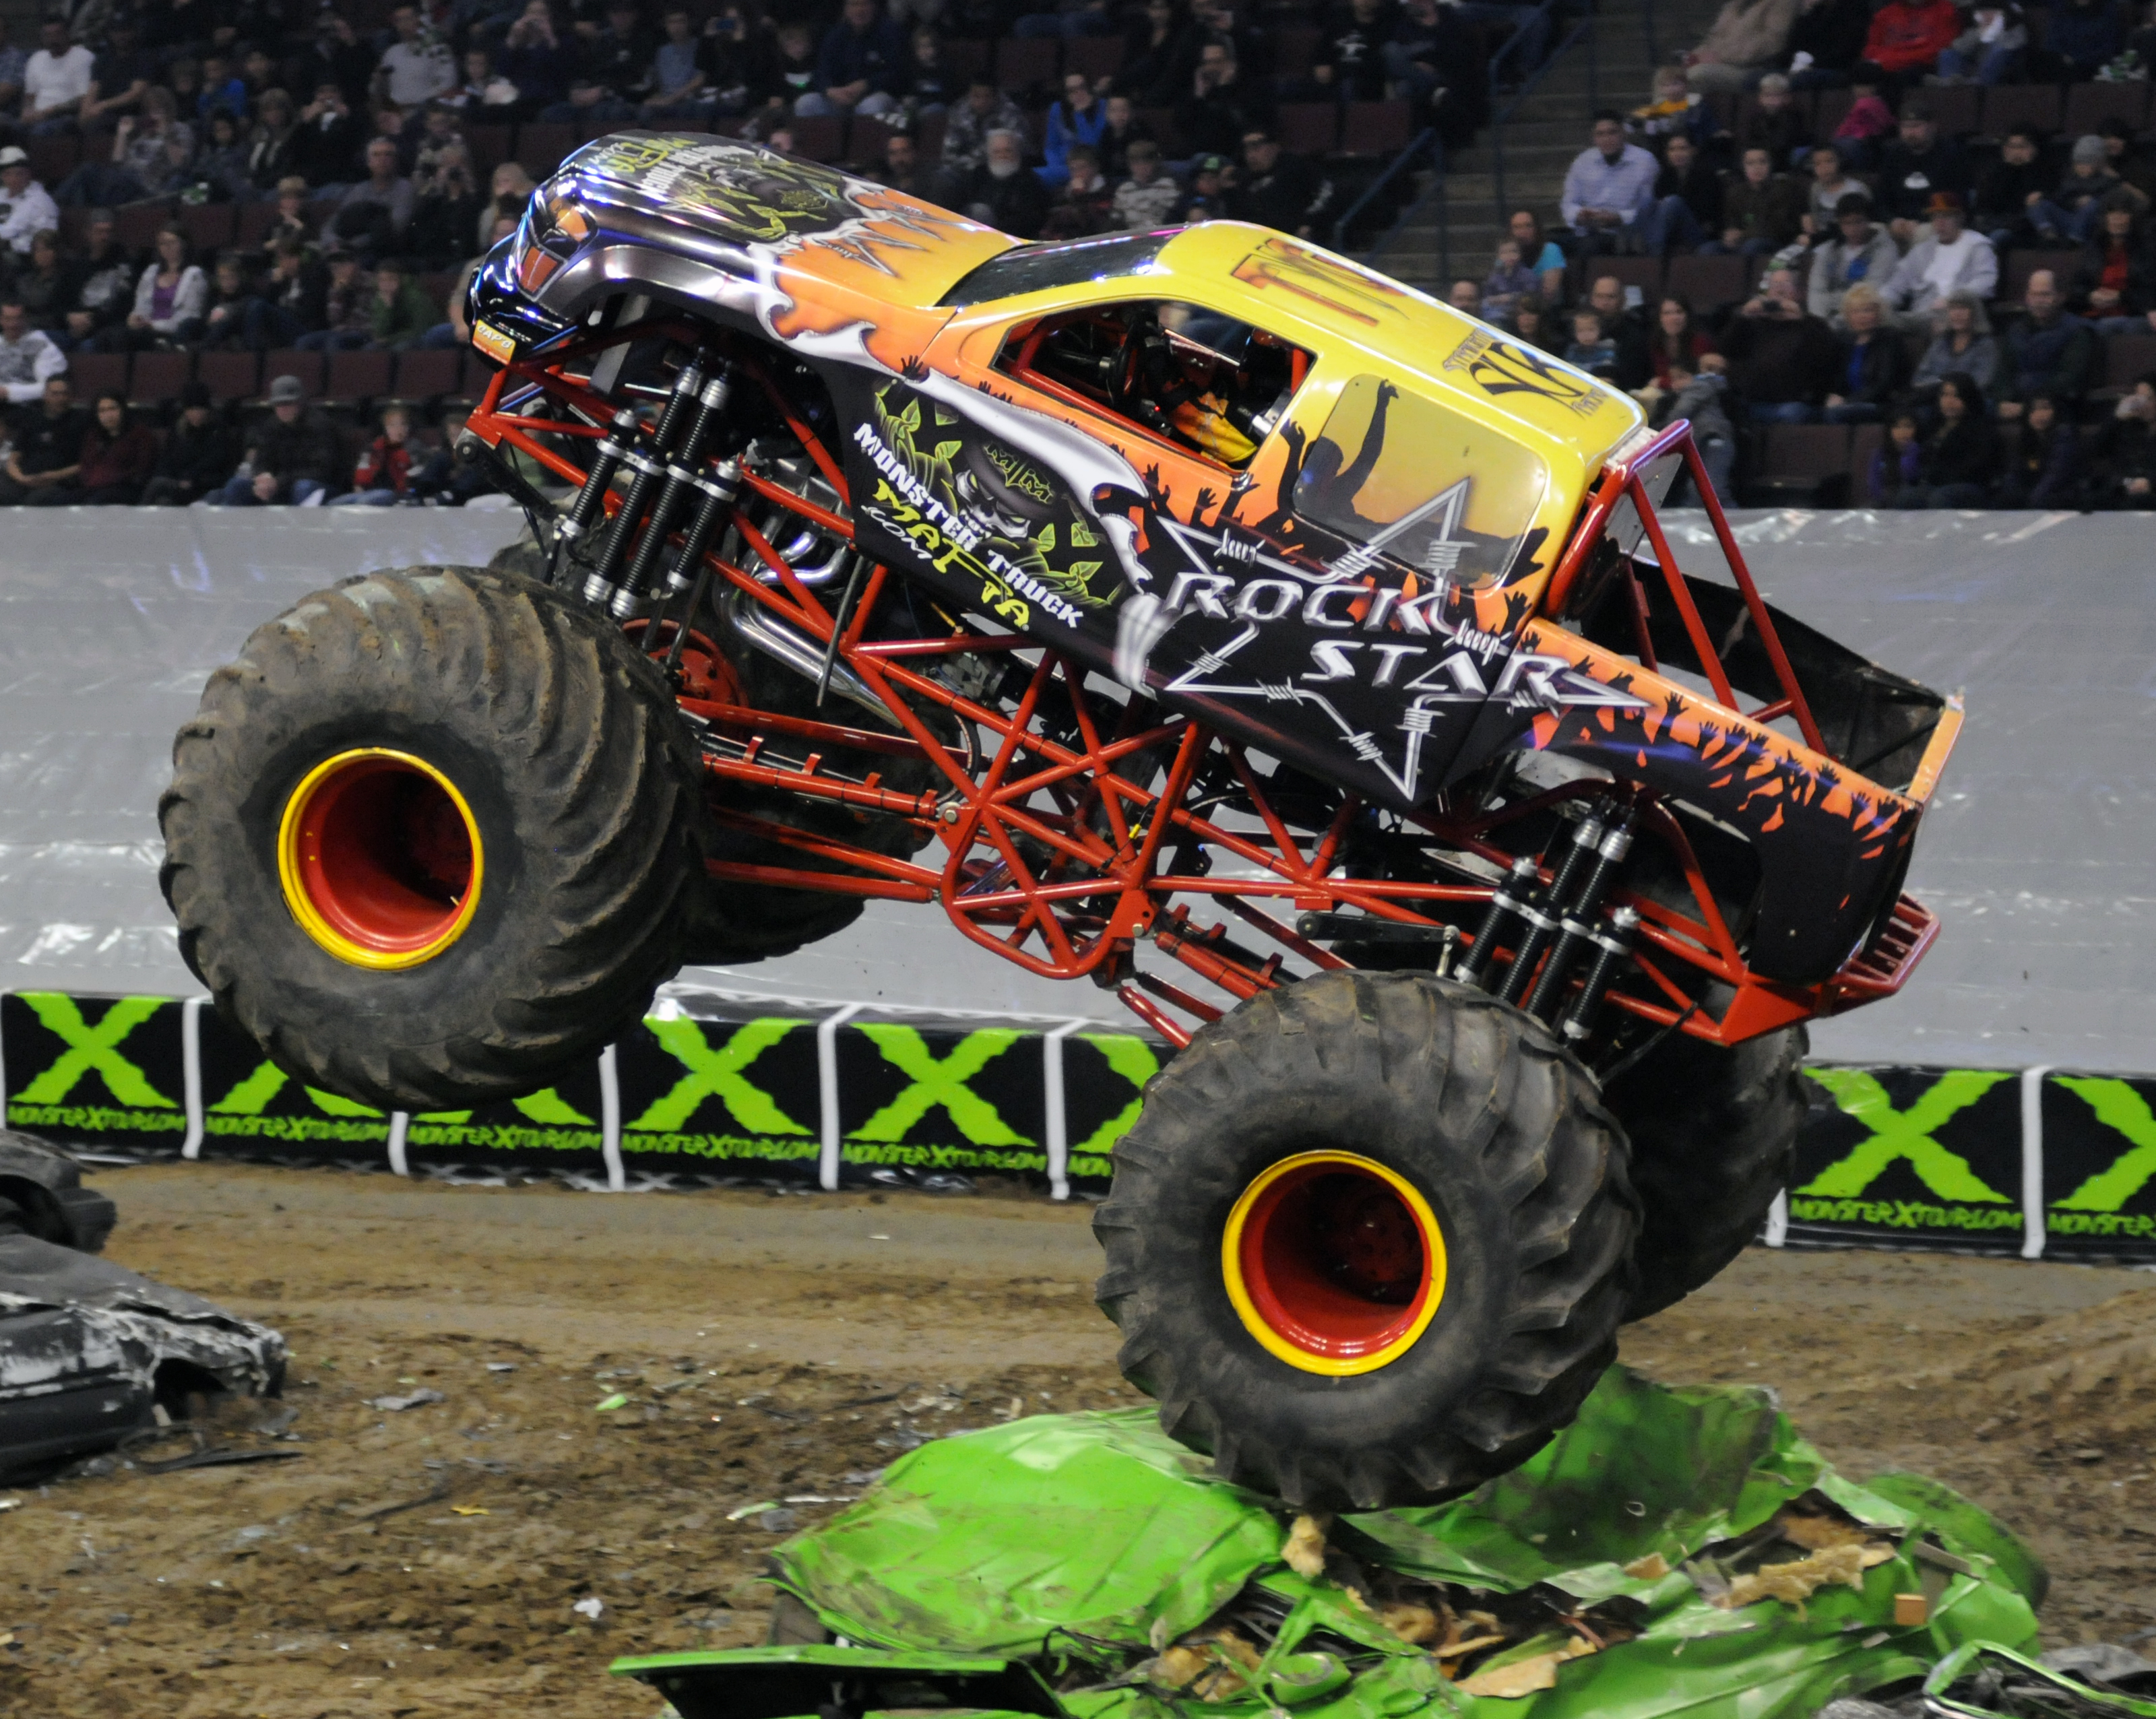 Monster trucks will be roaring into Prospera Place in Kelowna early next year as part of the Traxxas Monster Truck Tour